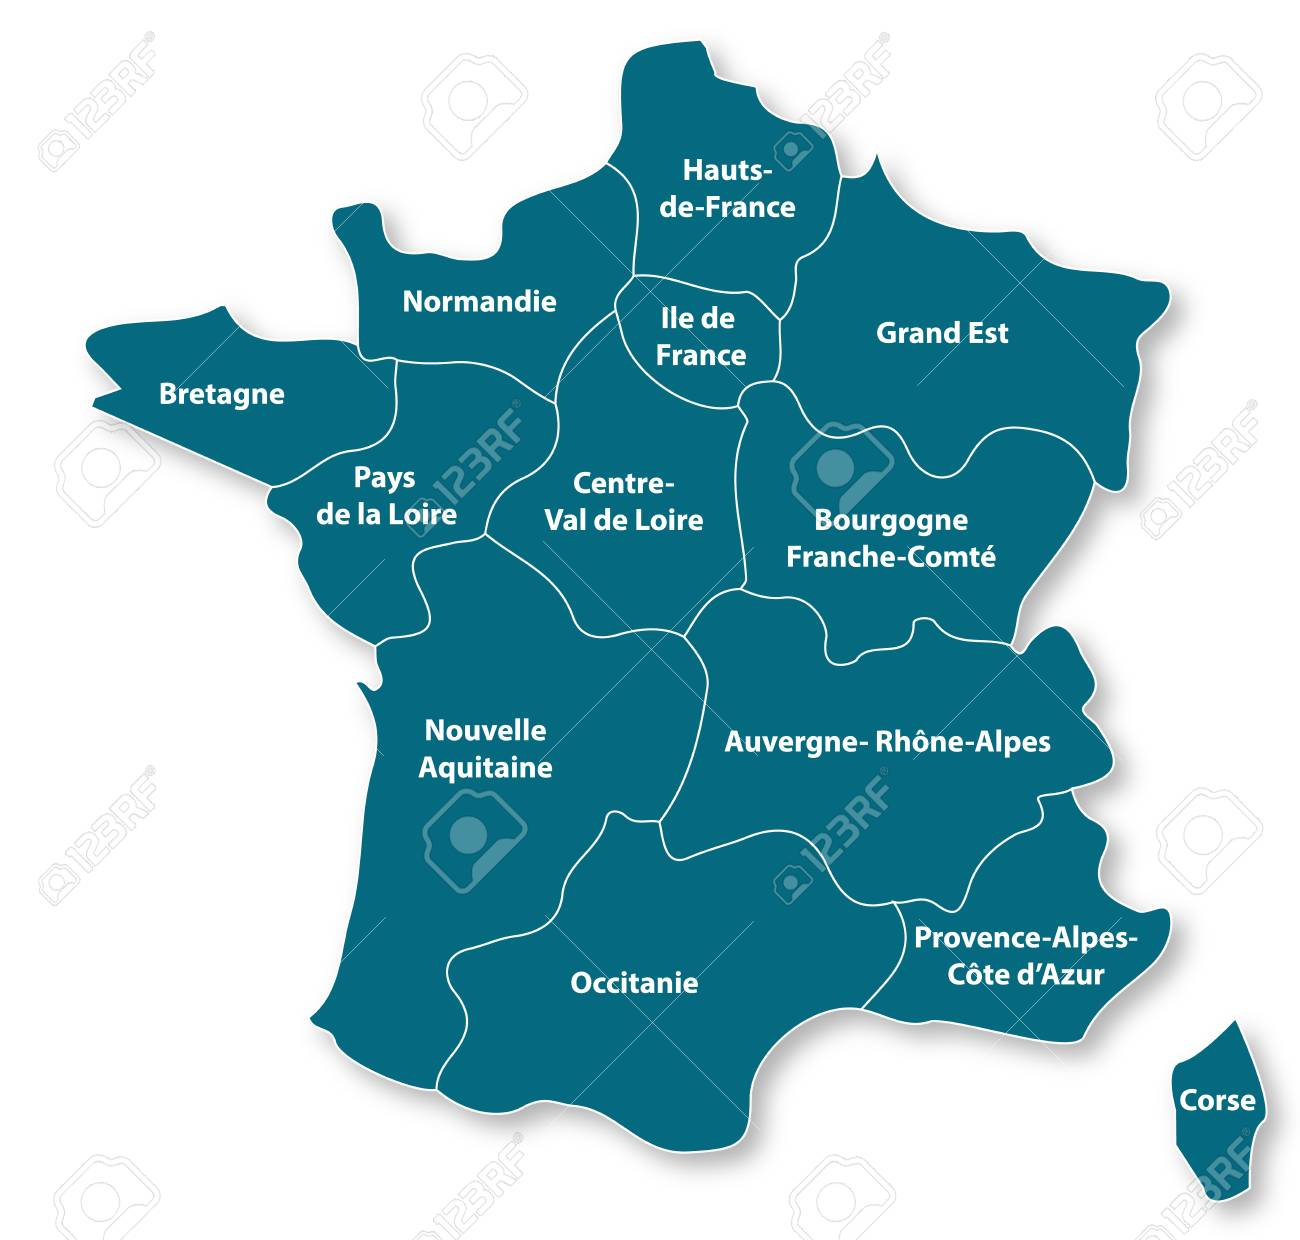 Regions De France Map Of The Regions Of France